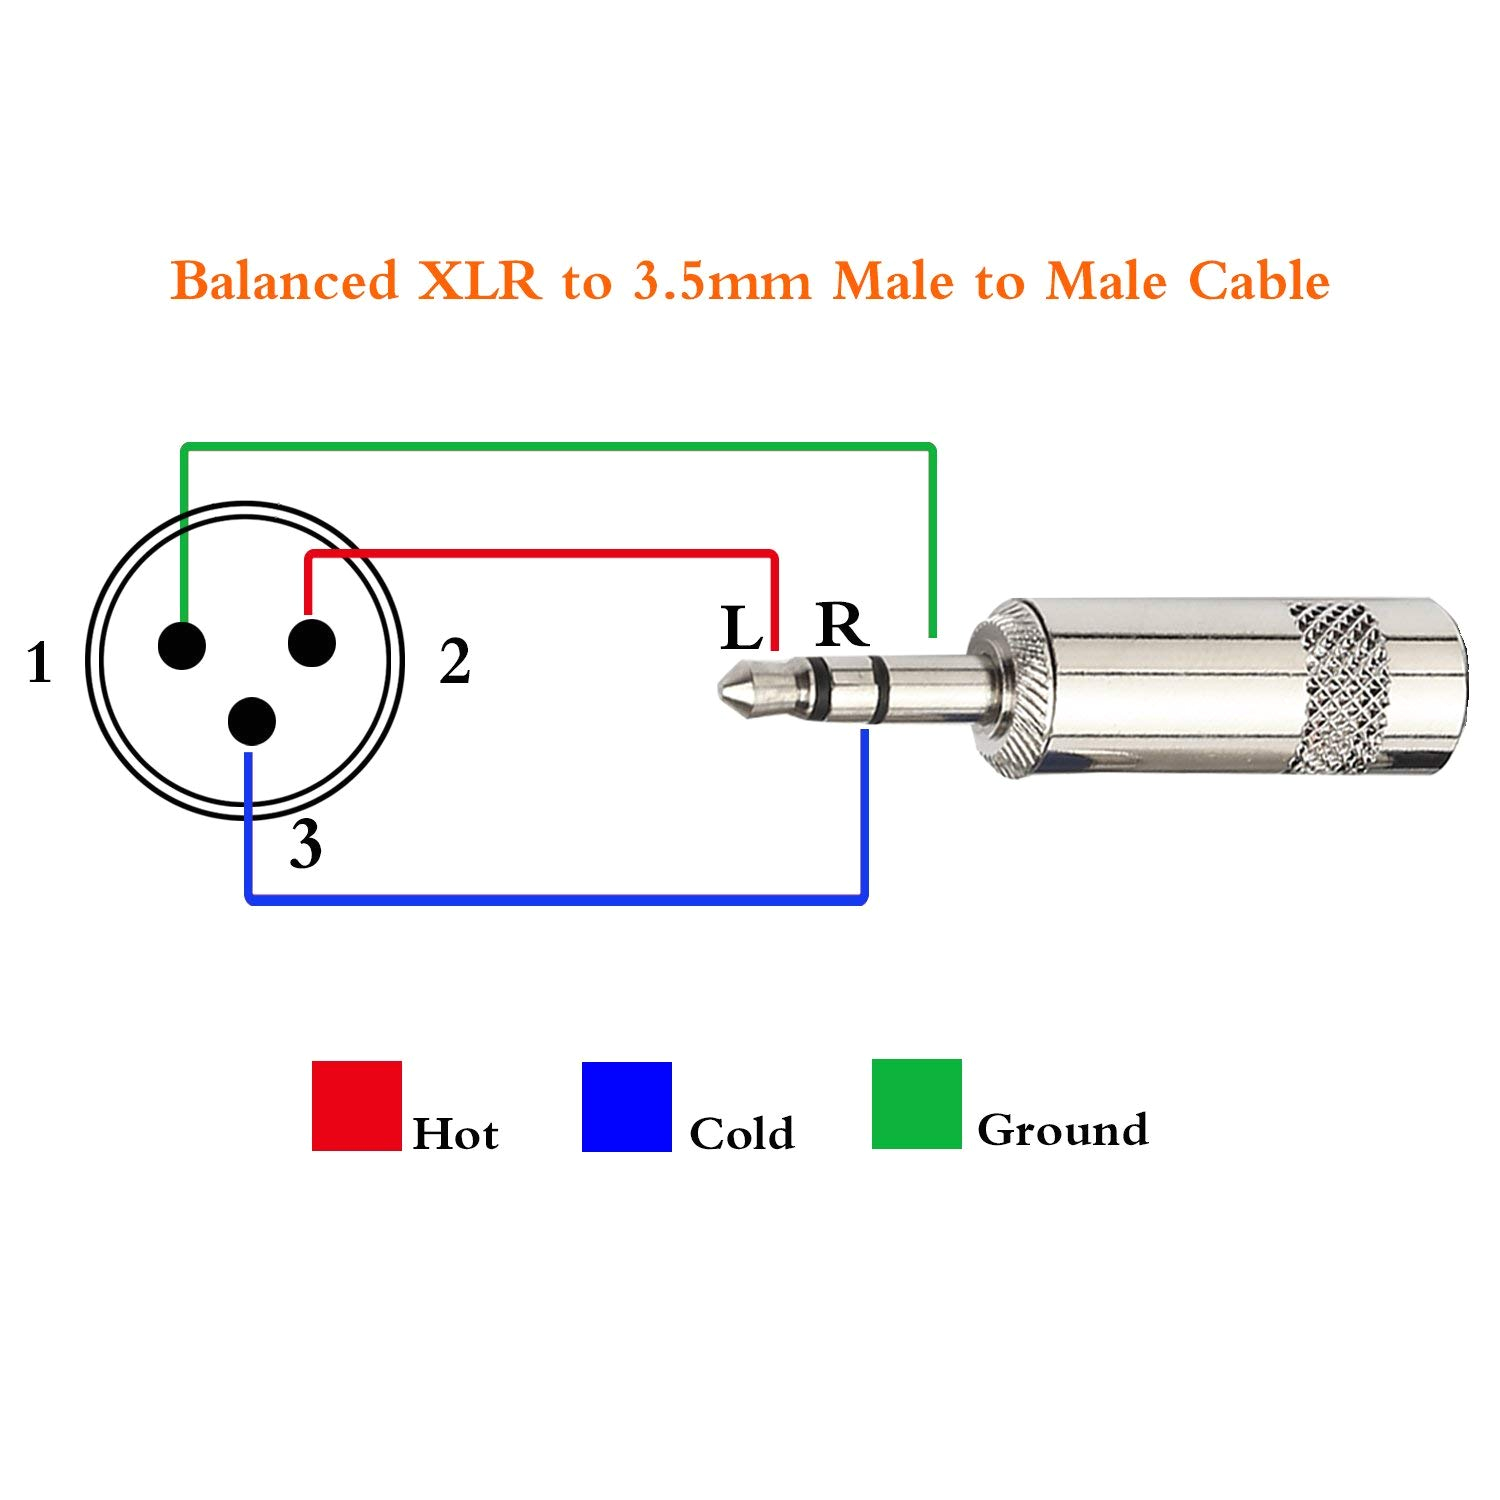 3.5 Mm Jack to Xlr Wiring Diagram Amazon Com Tisino Mini Jack 3 5mm 1 8 Inch Trs Stereo Male to Xlr